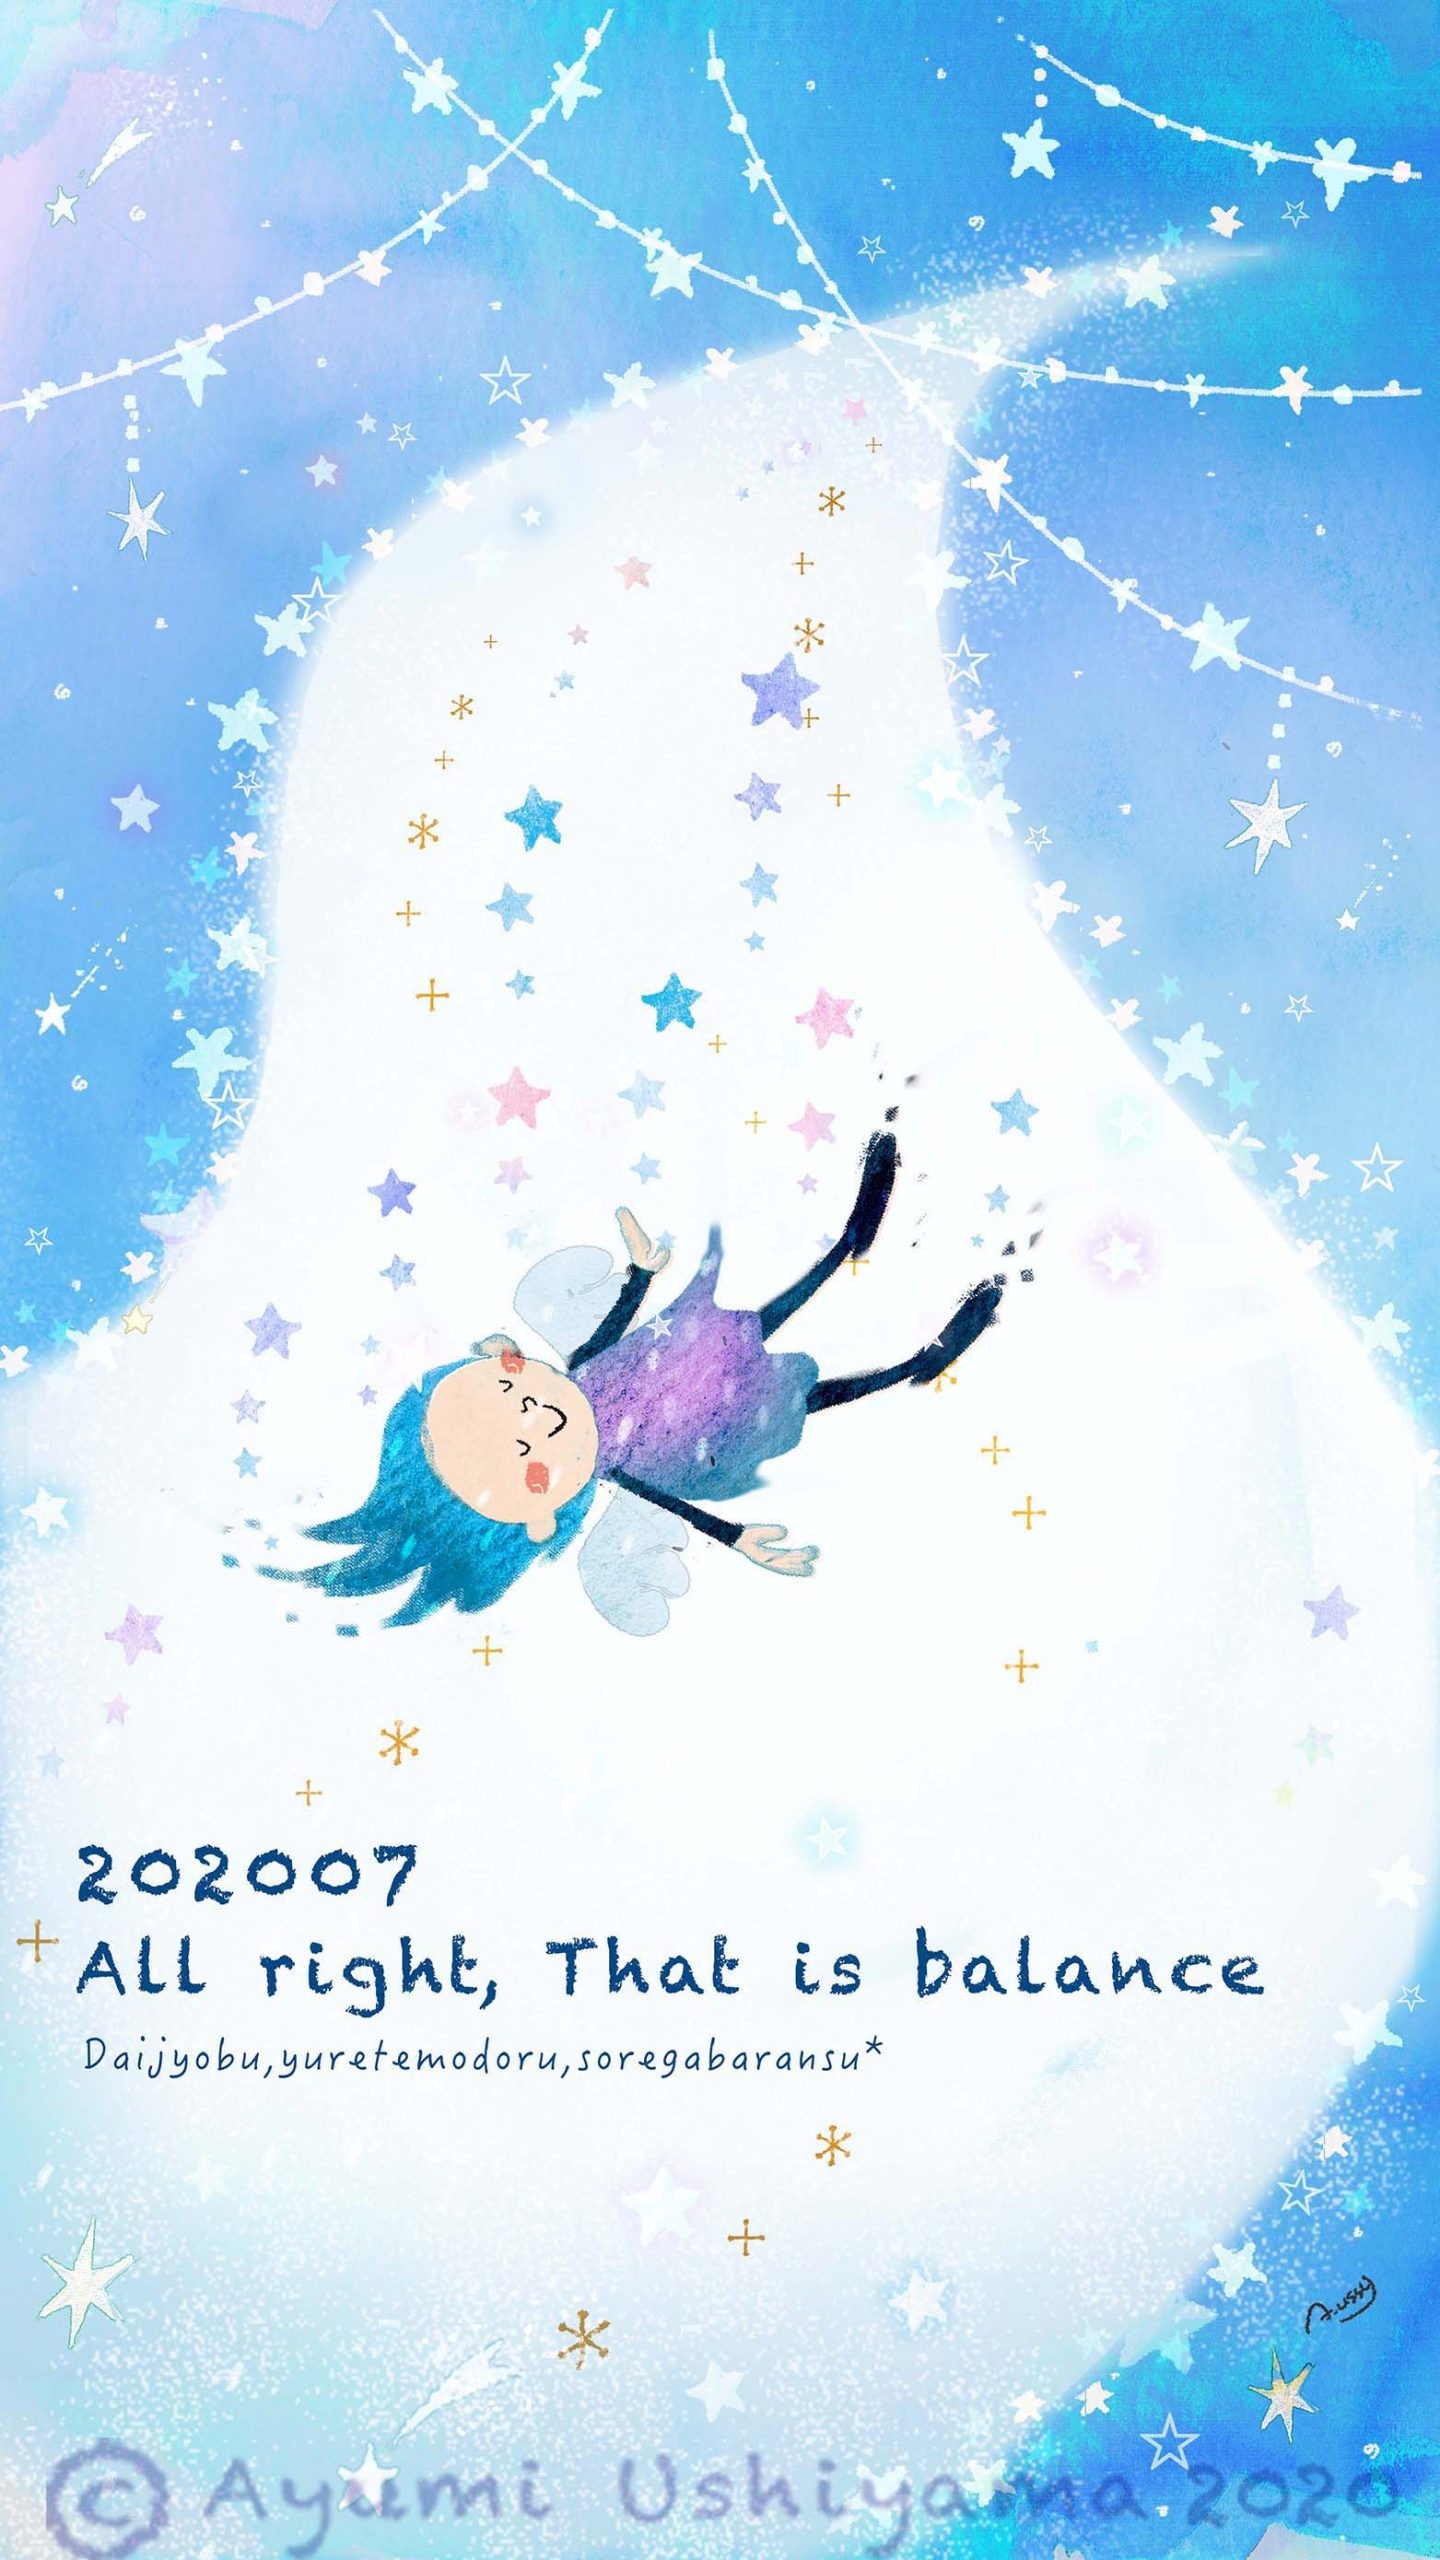 2020.07『All right, That is balance』ローマ字